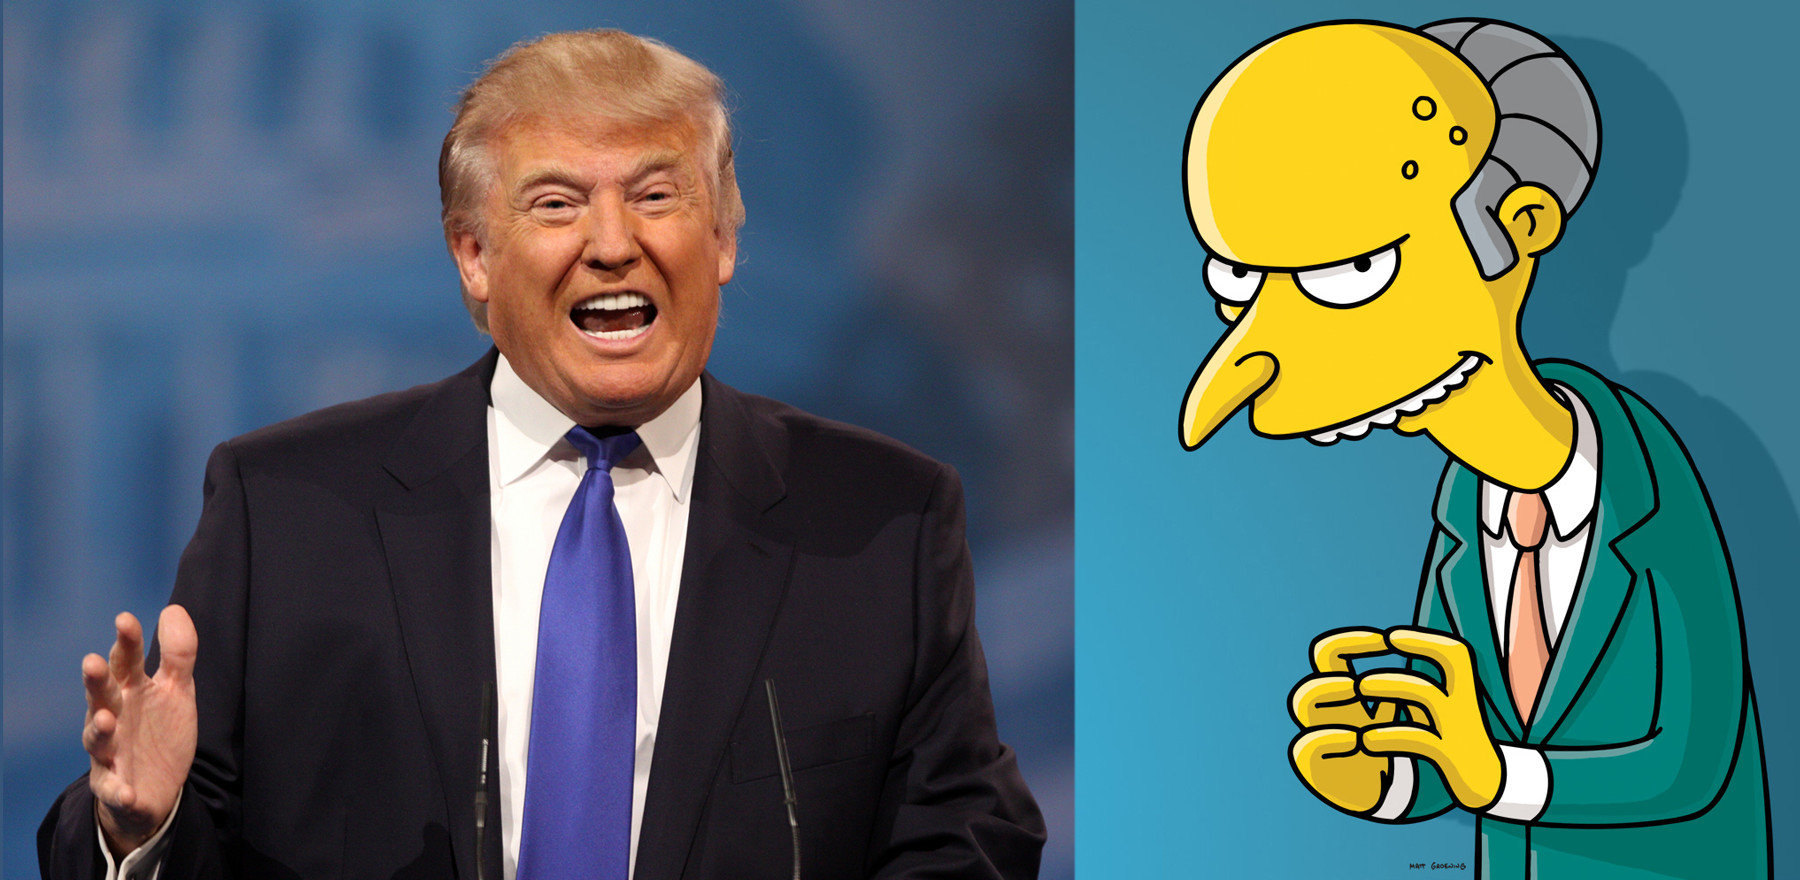 Who Said It: Donald Trump or Mr. Burns?